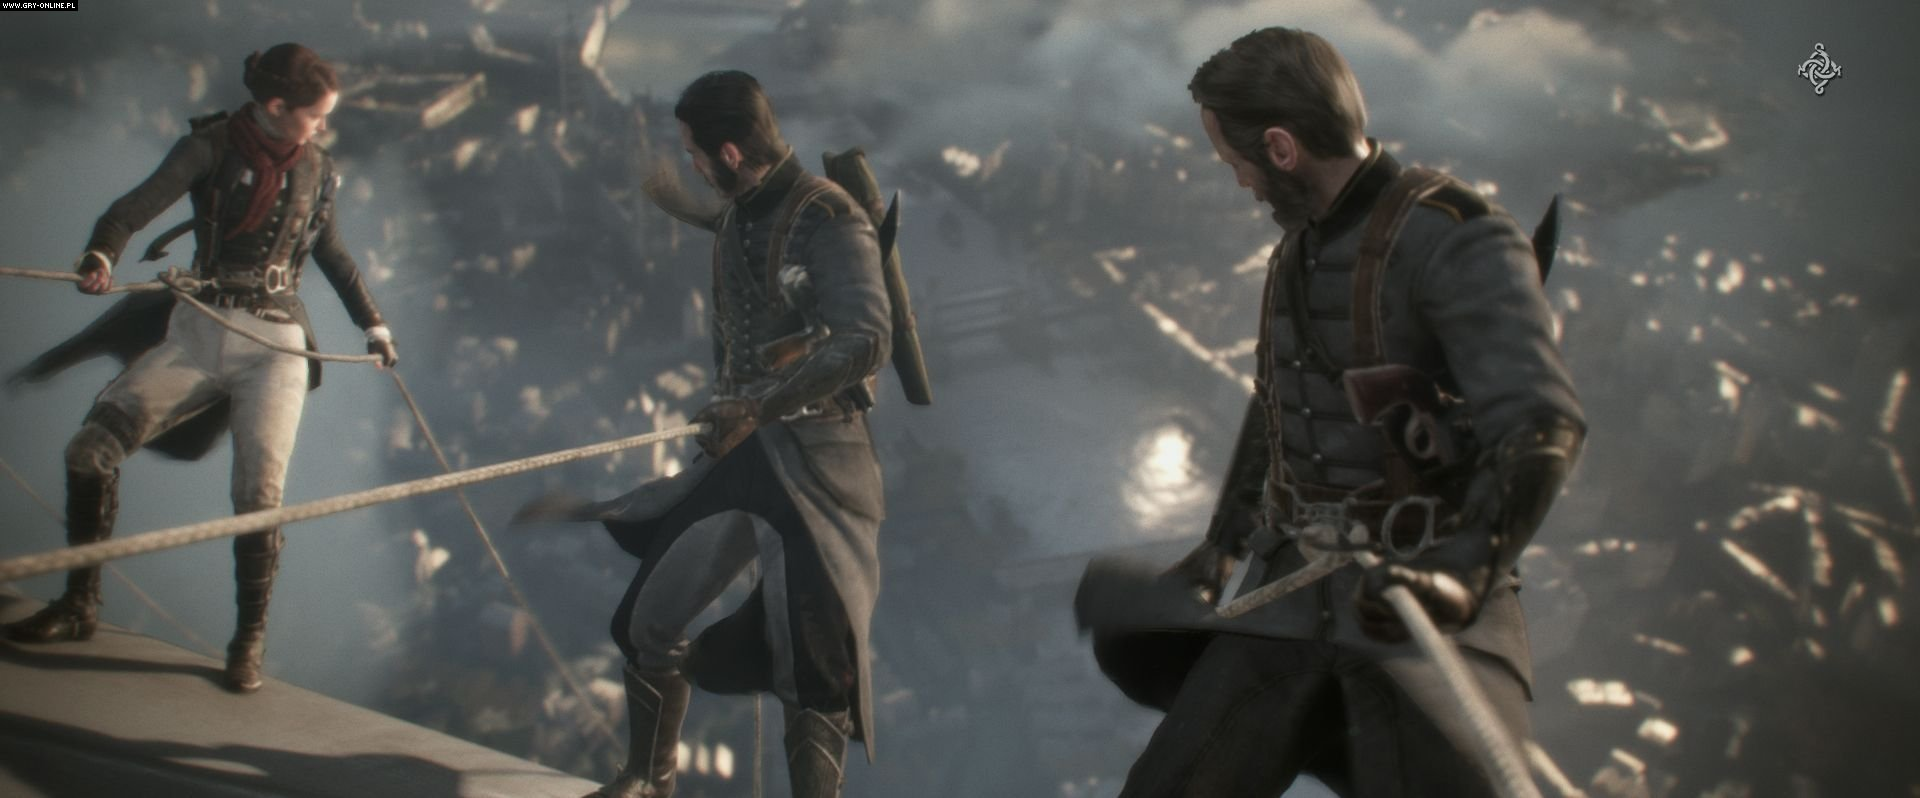 The Order: 1886 PS4 Games Image 5/69, Ready At Dawn Studios, Sony Interactive Entertainment